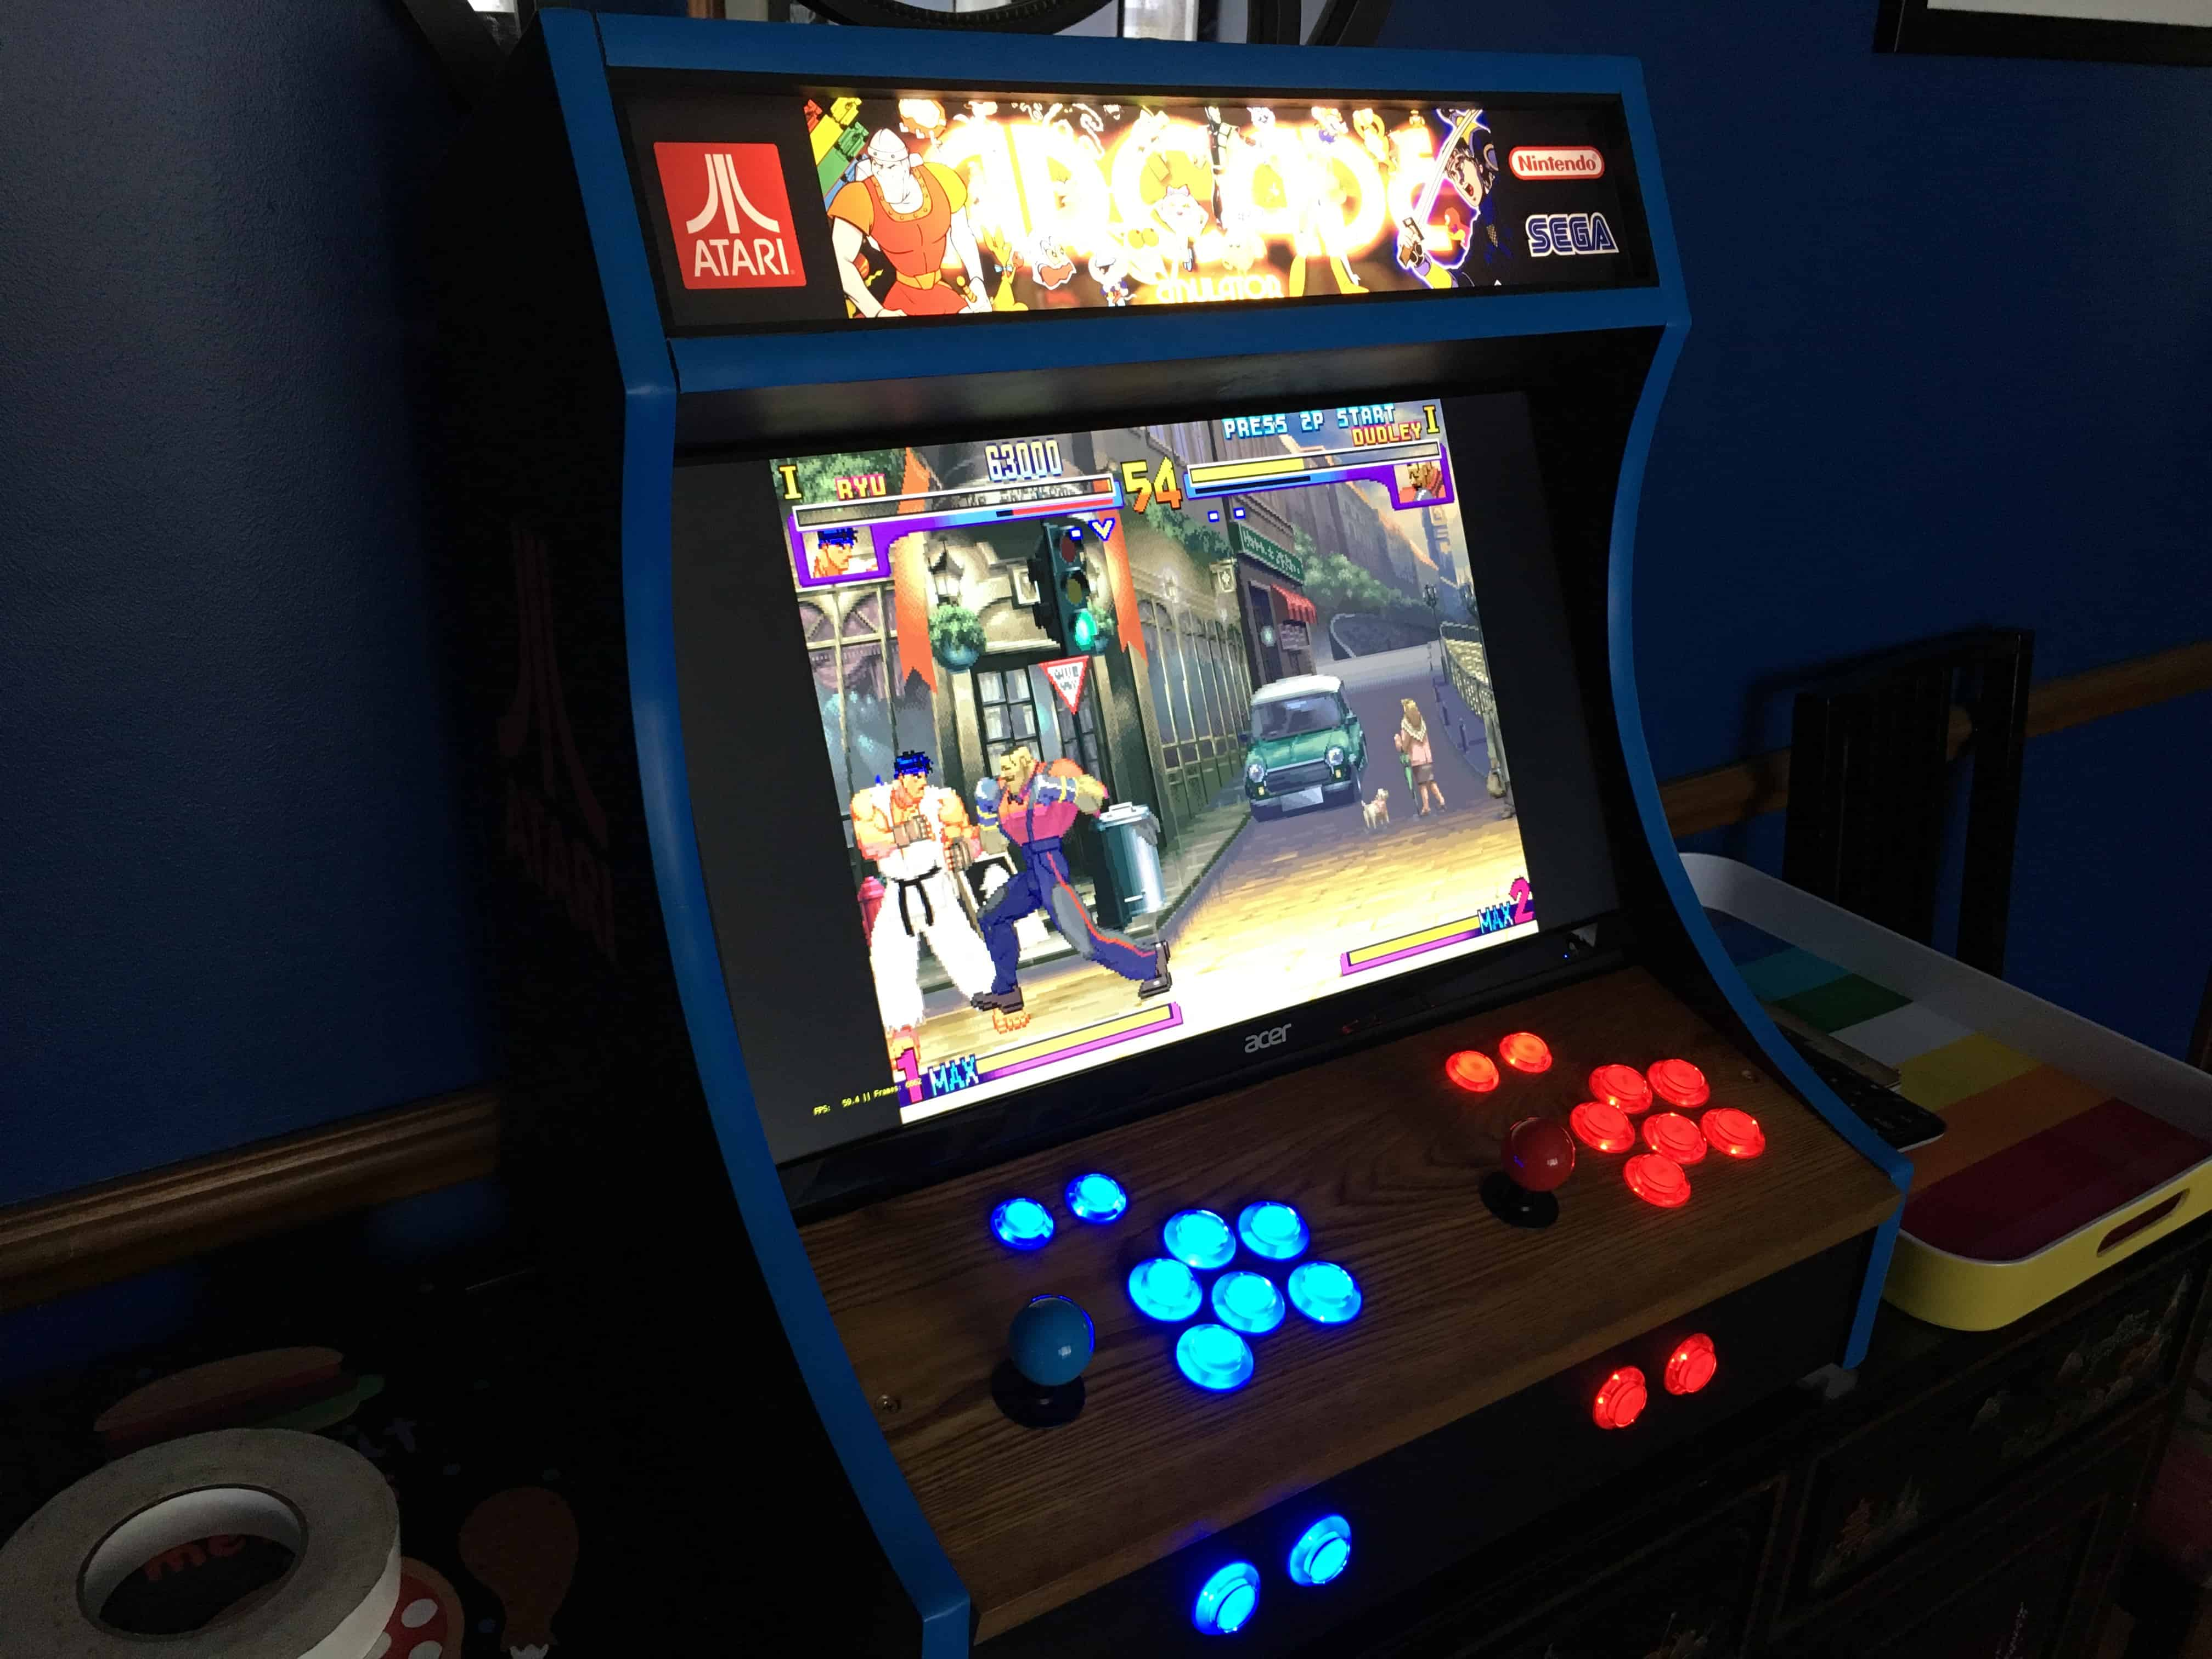 Old fashioned arcade games PADDLE FOR SOCIAL CHANGE - Home